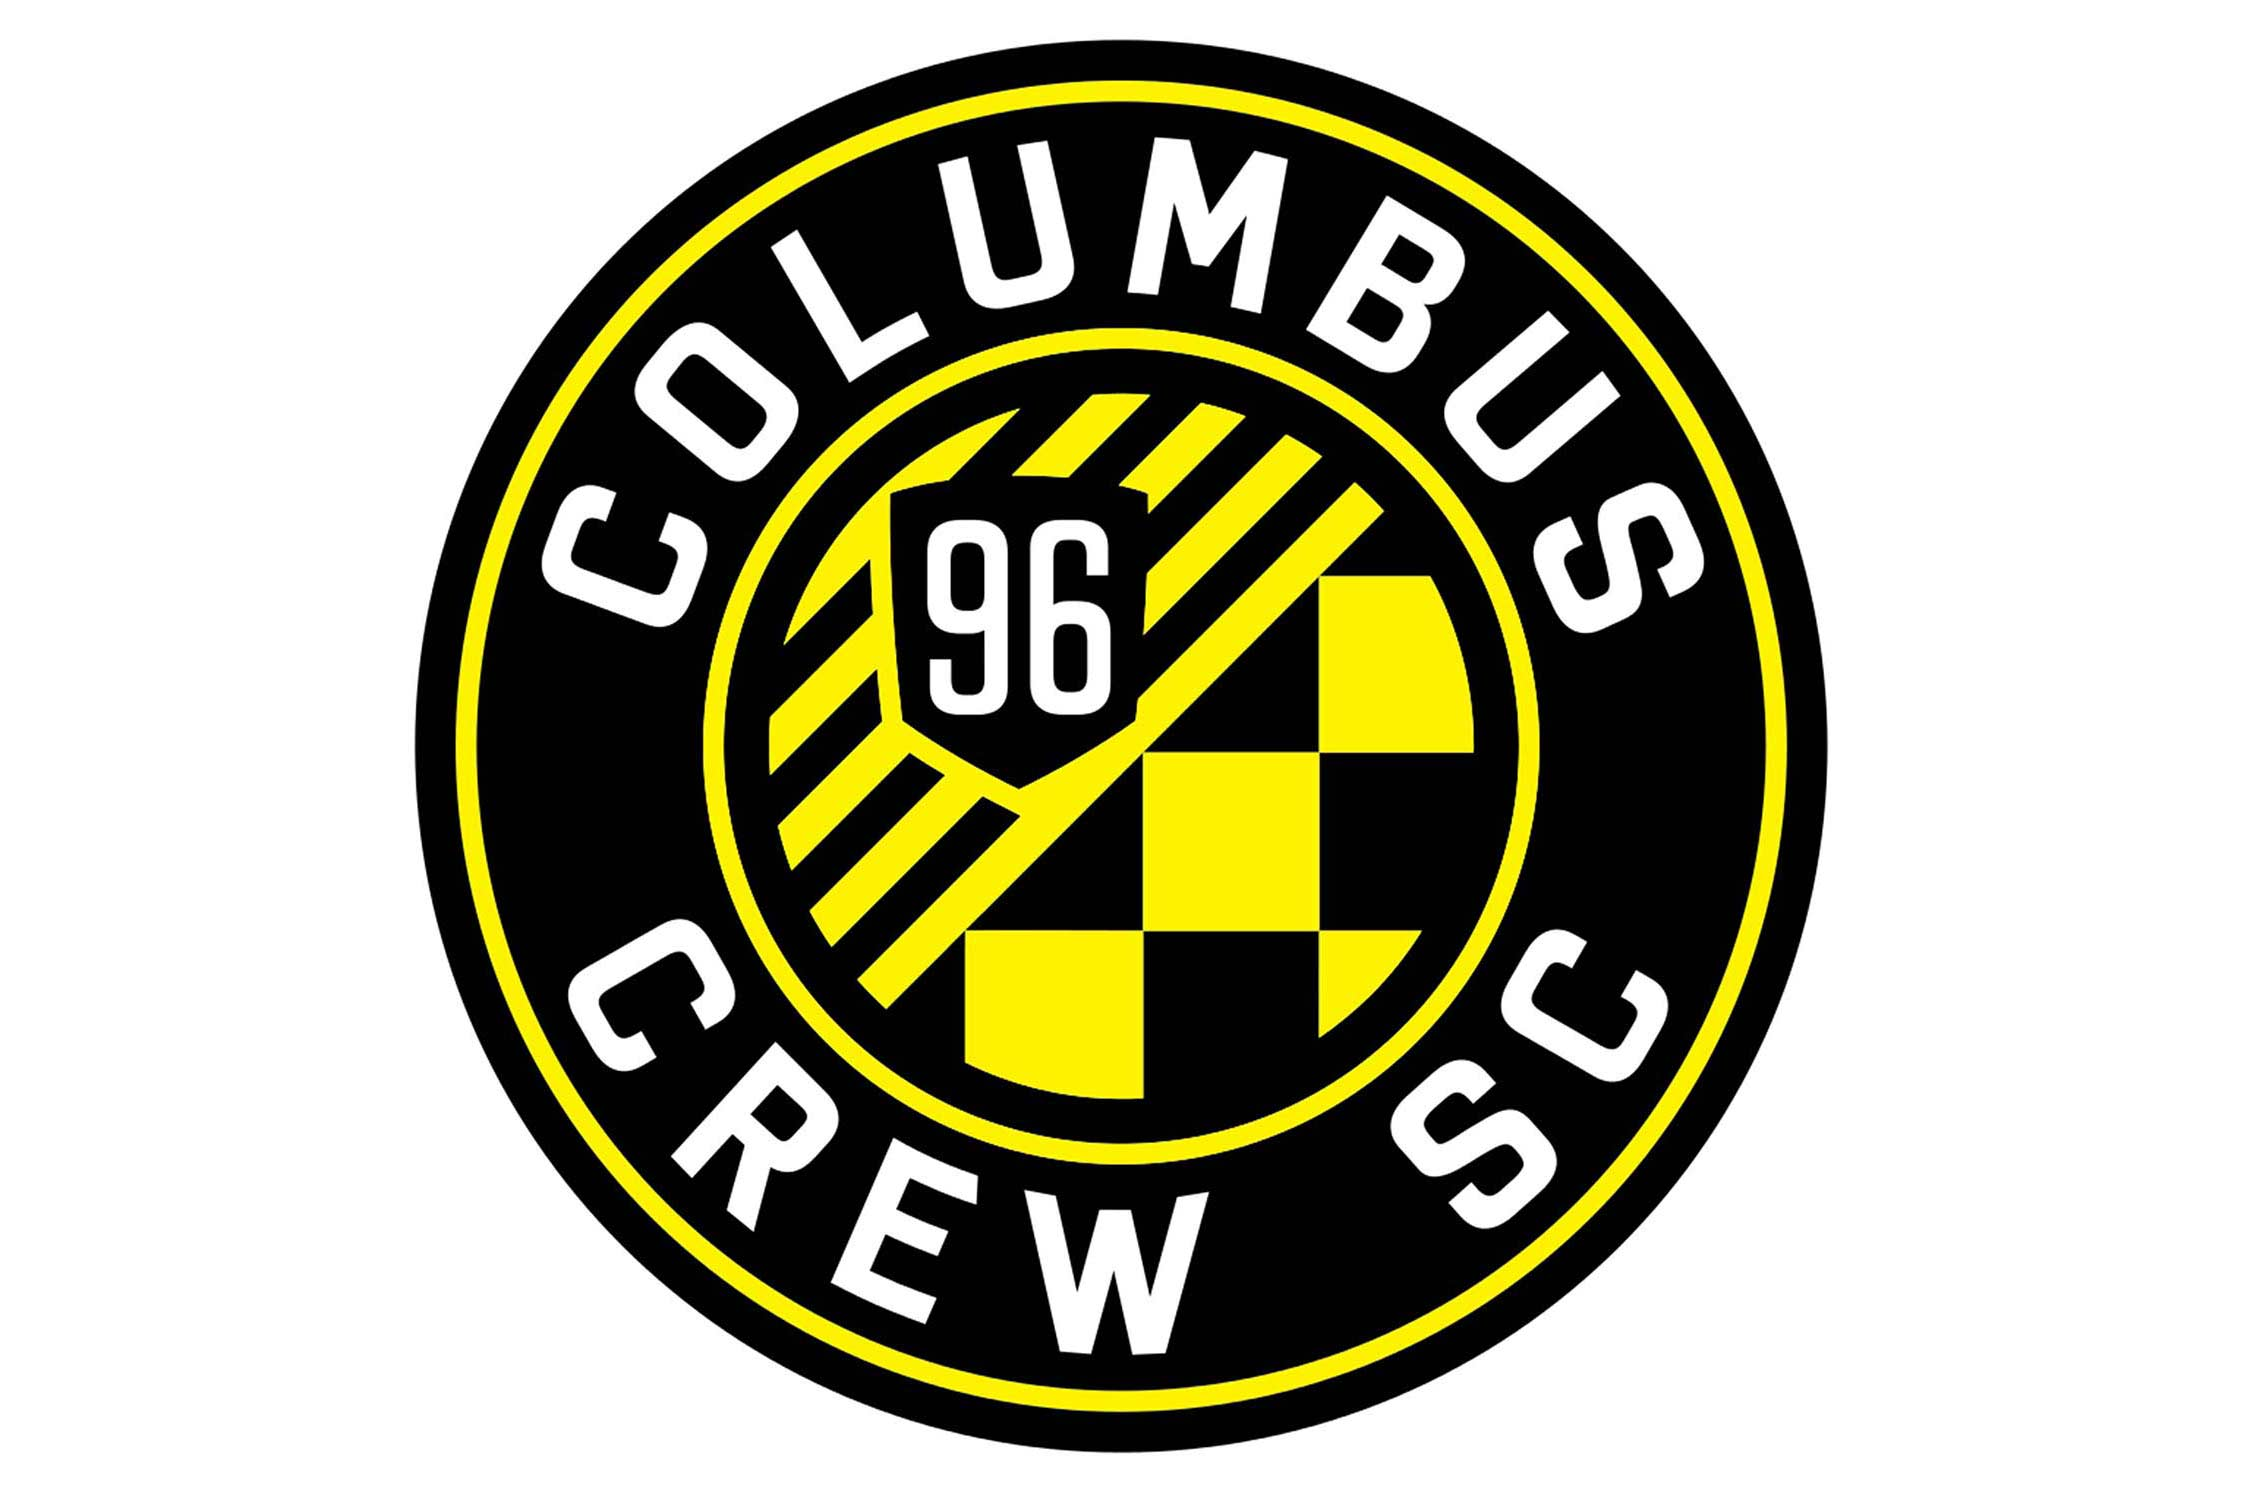 "One of MLS's founding clubs, Crew SC re-made its logo in 2014. The circular shape represents the O in its home state of Ohio, nine stripes on the inside stand for the other nine inaugural MLS teams, and the ""96"" represents the club/league's inaugural year of play. The checkered design in the middle represents the flags waved by the club's supporters."